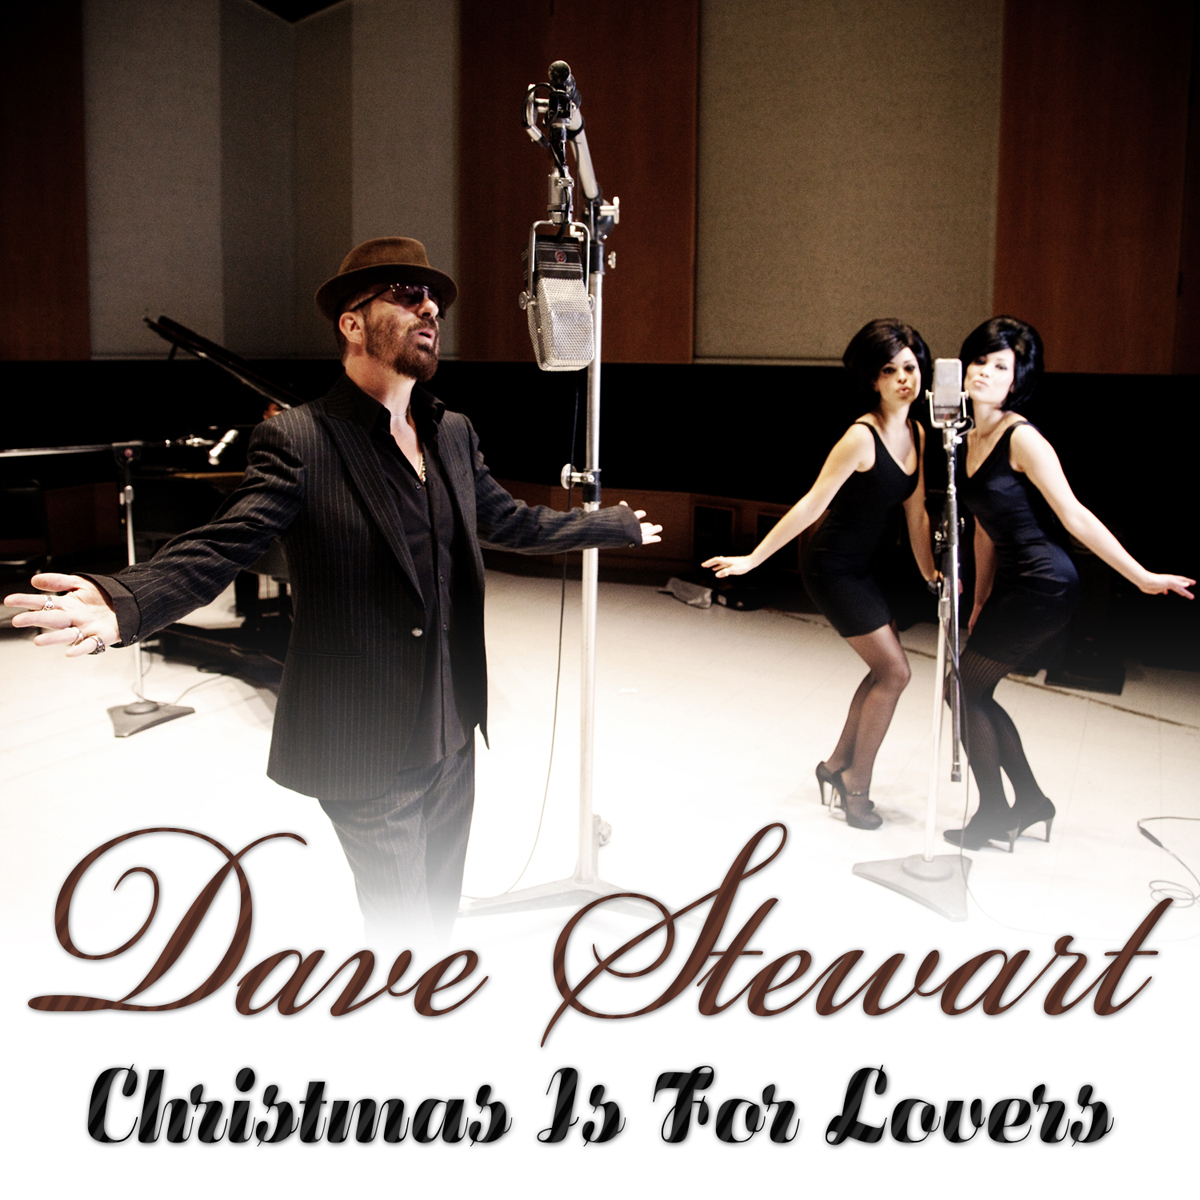 https://surfdog.com/userfiles/image/videos/ds-xmas-is-for-lovers-single-cover-3.jpg